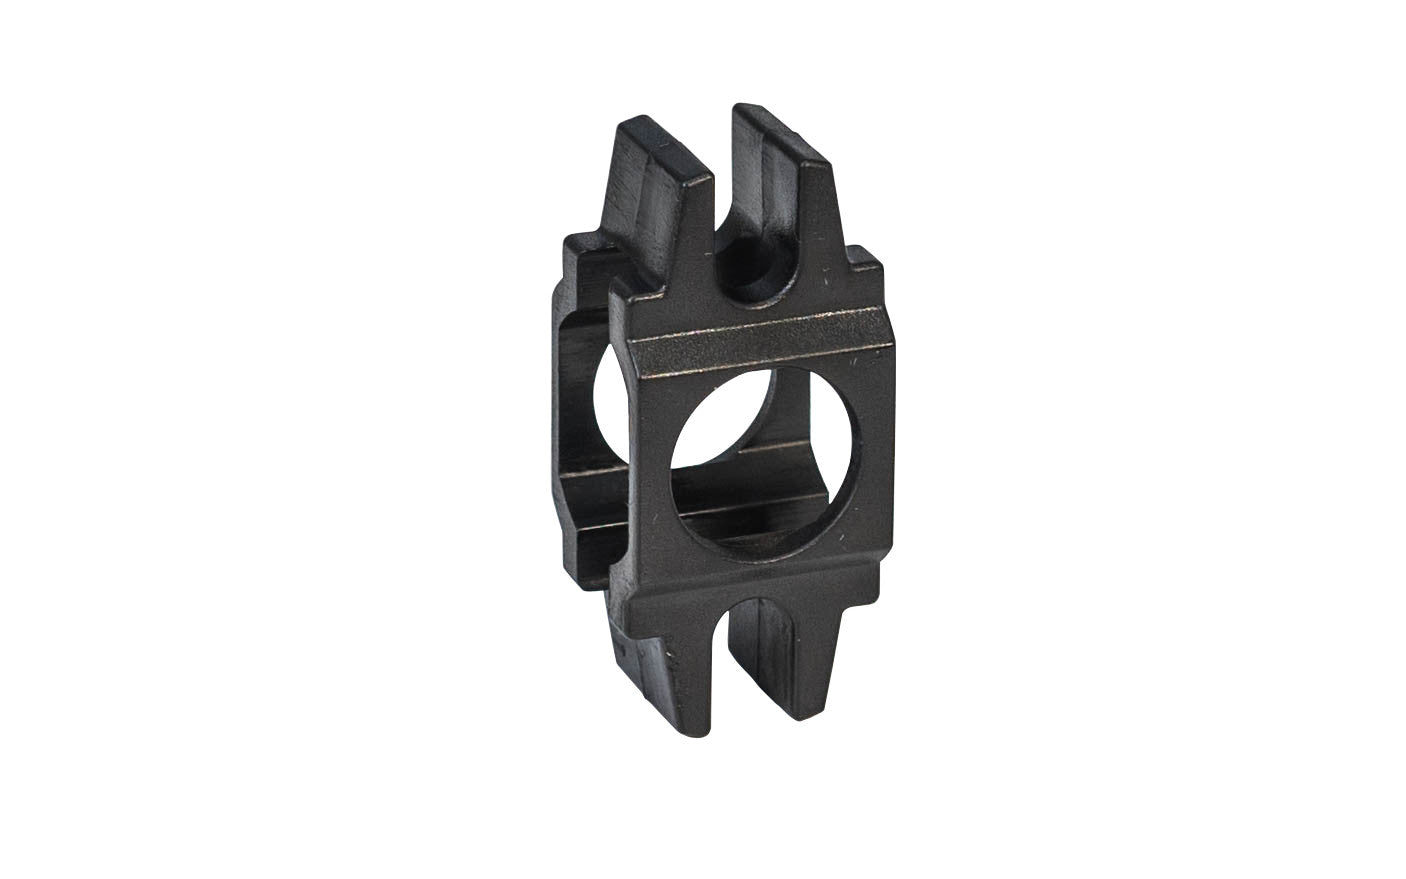 Adapter Piece (for 2-1/8